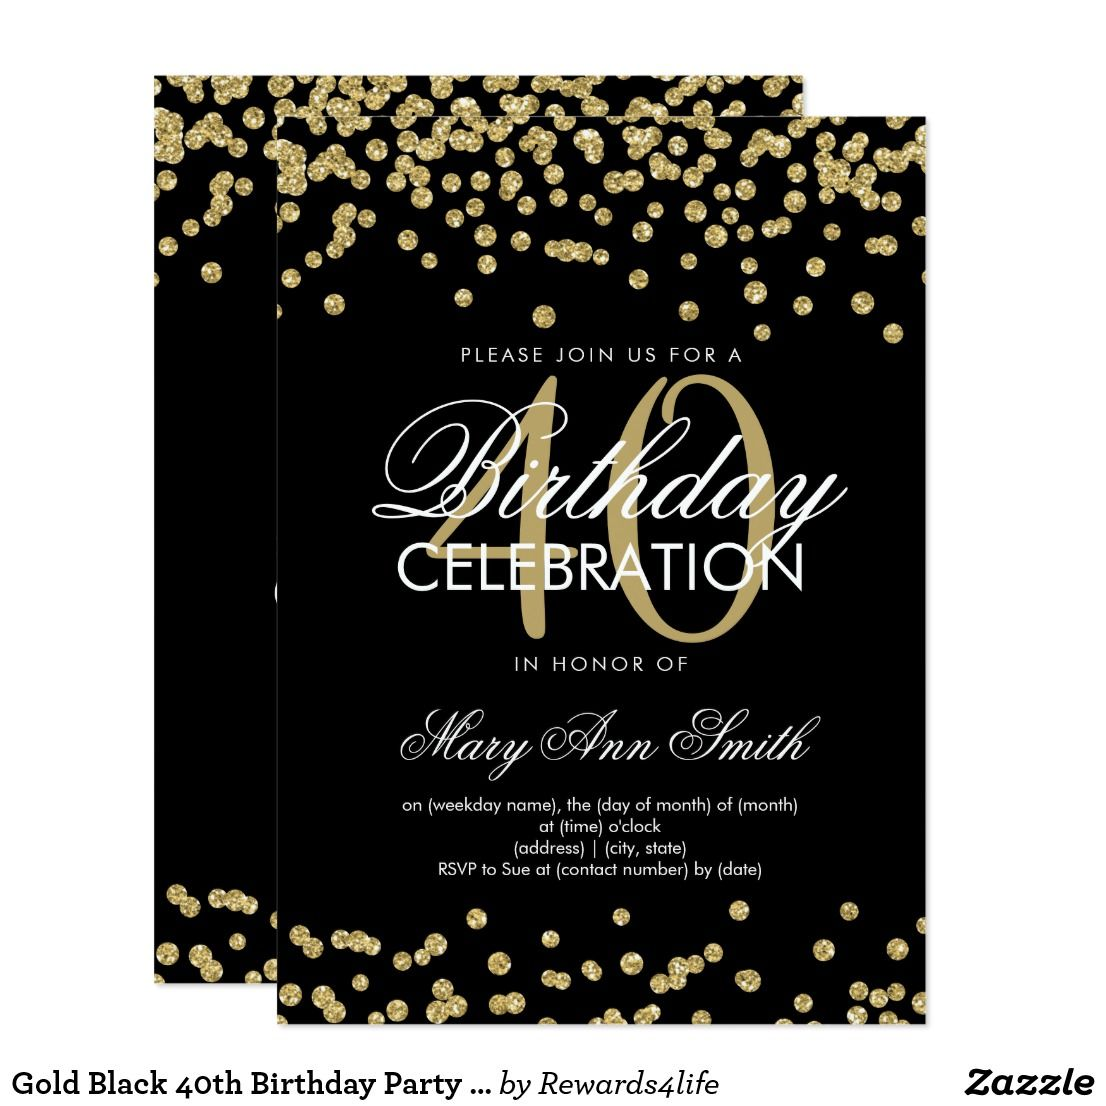 Gold Black 40th Birthday Party Glitter Confetti Invitation Elegant Faux Template